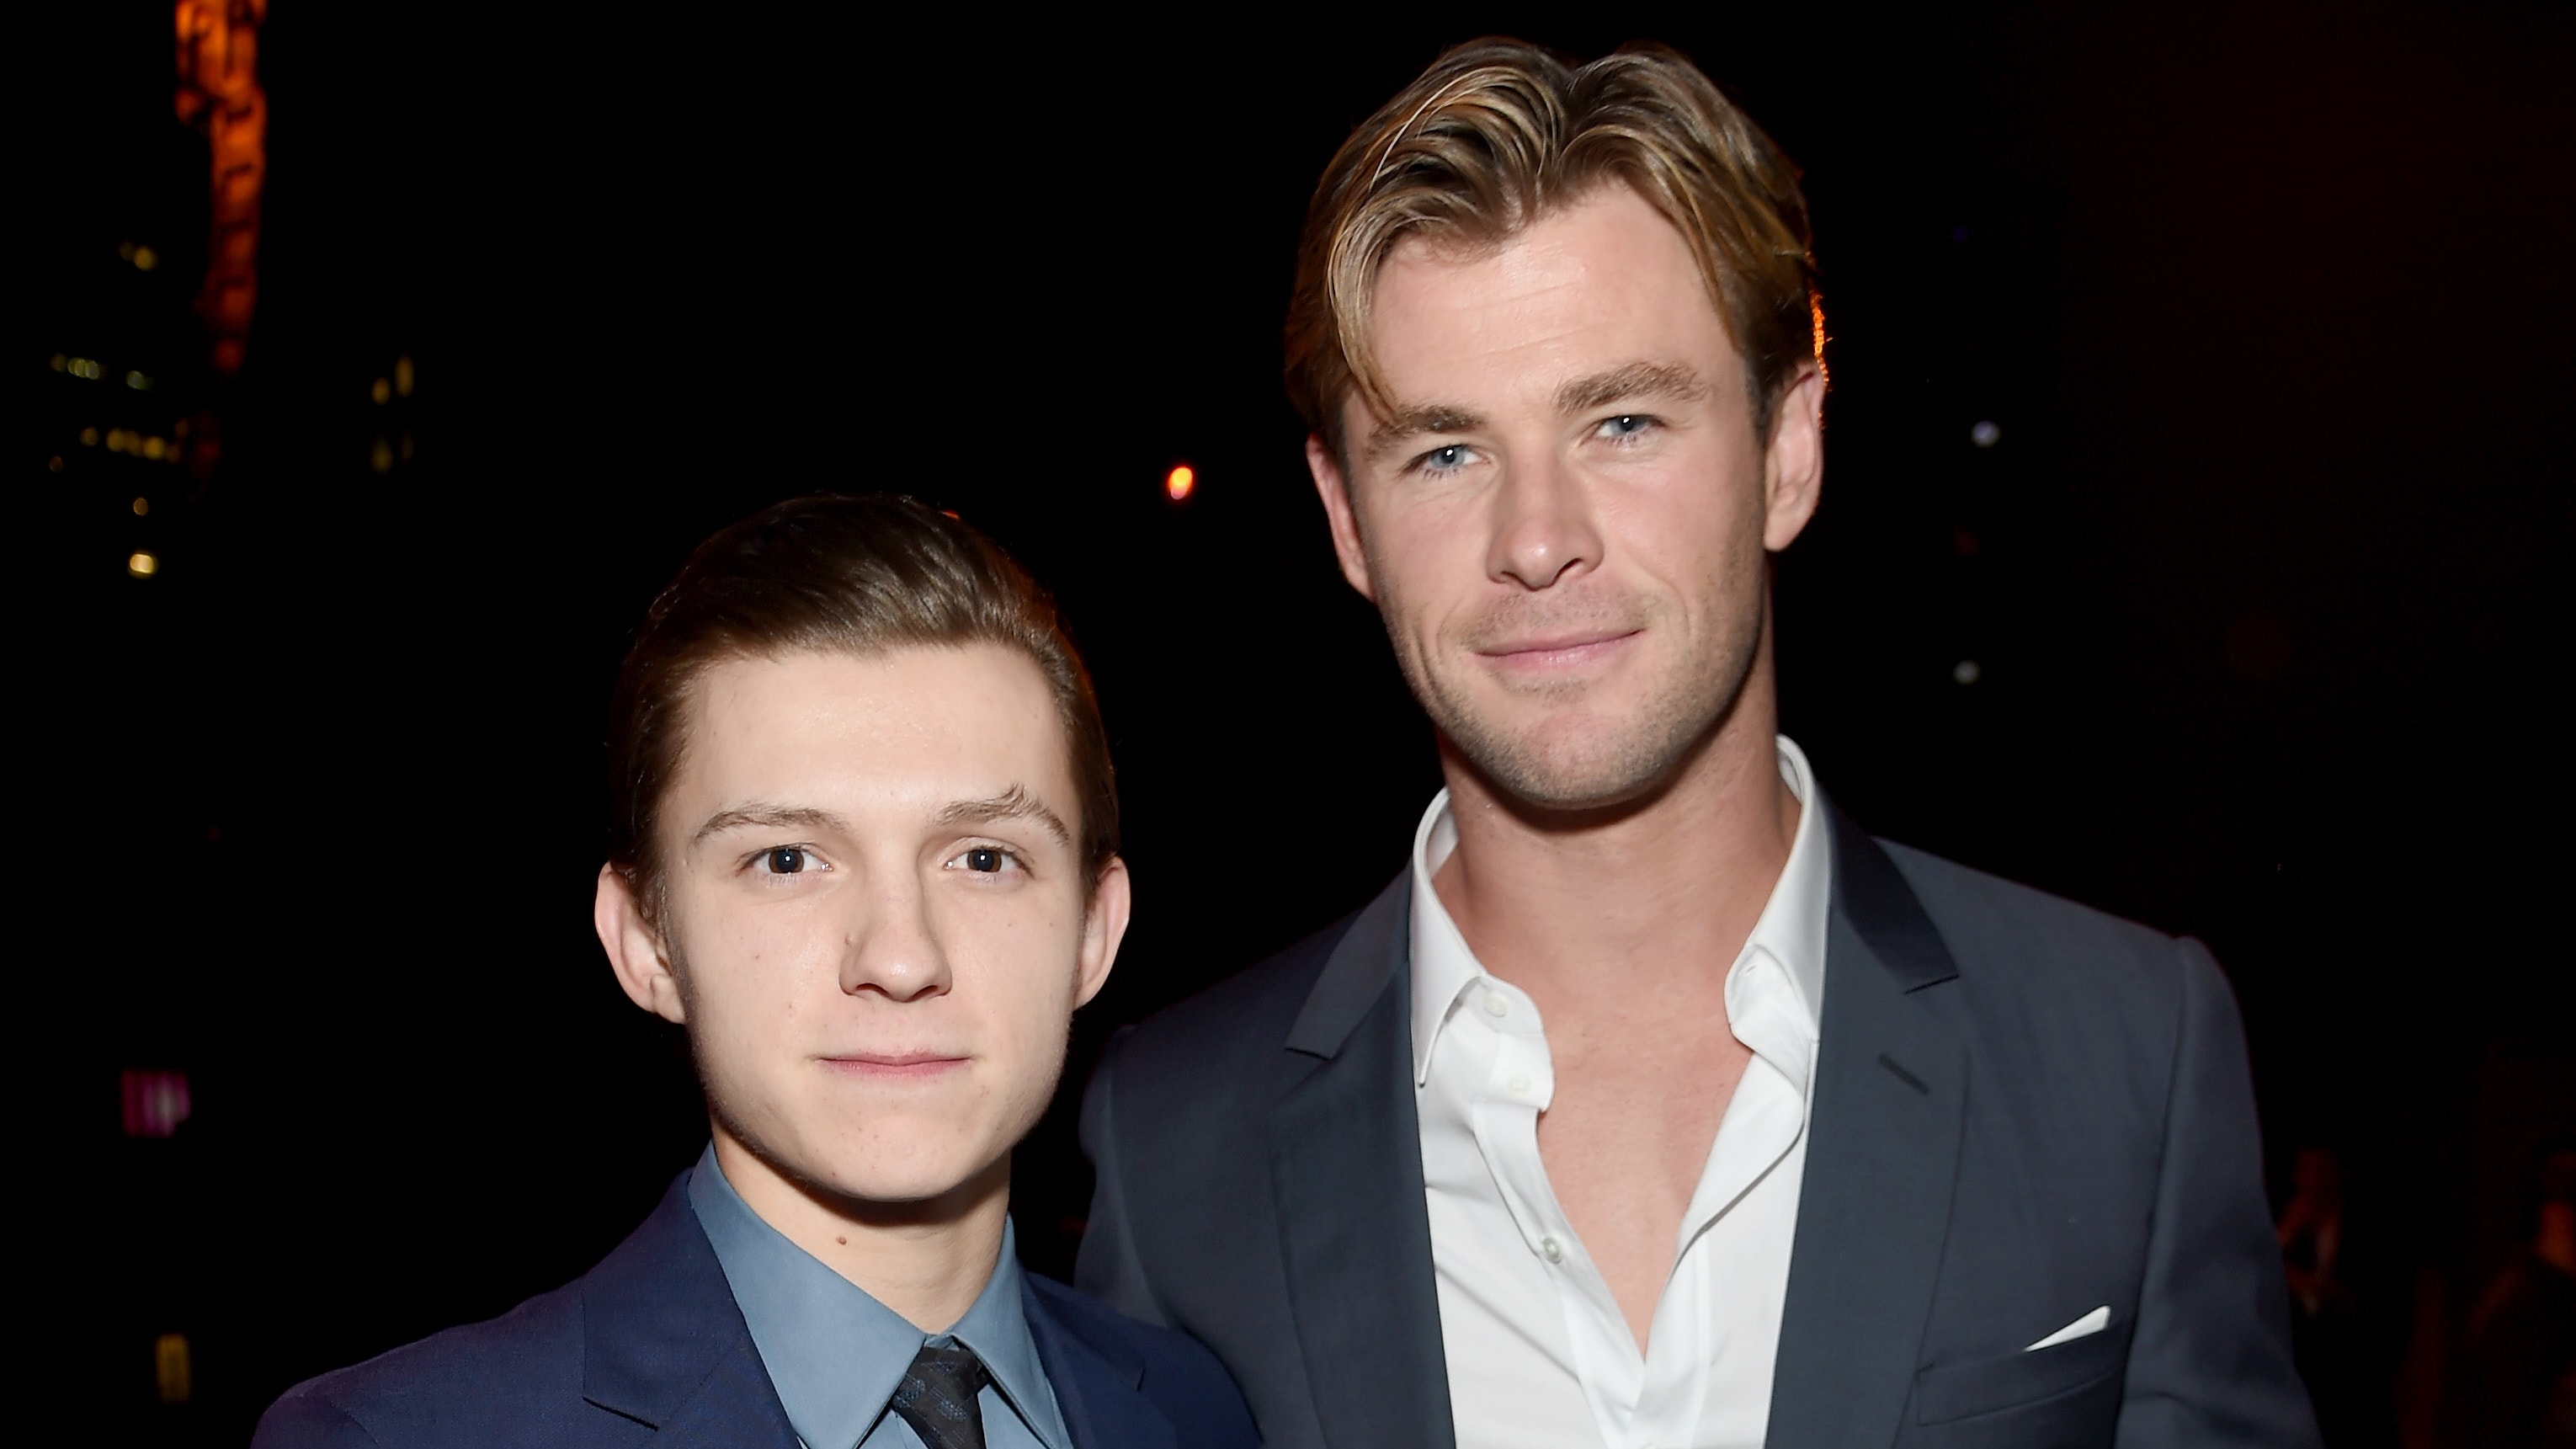 """NEW YORK, NY - DECEMBER 07:  Tom Holland and Chris Hemsworth attend """"In The Heart Of The Sea"""" New York Premiere after party at Appel Room on December 7, 2015 in New York City.  (Photo by Jamie McCarthy/Getty Images)"""